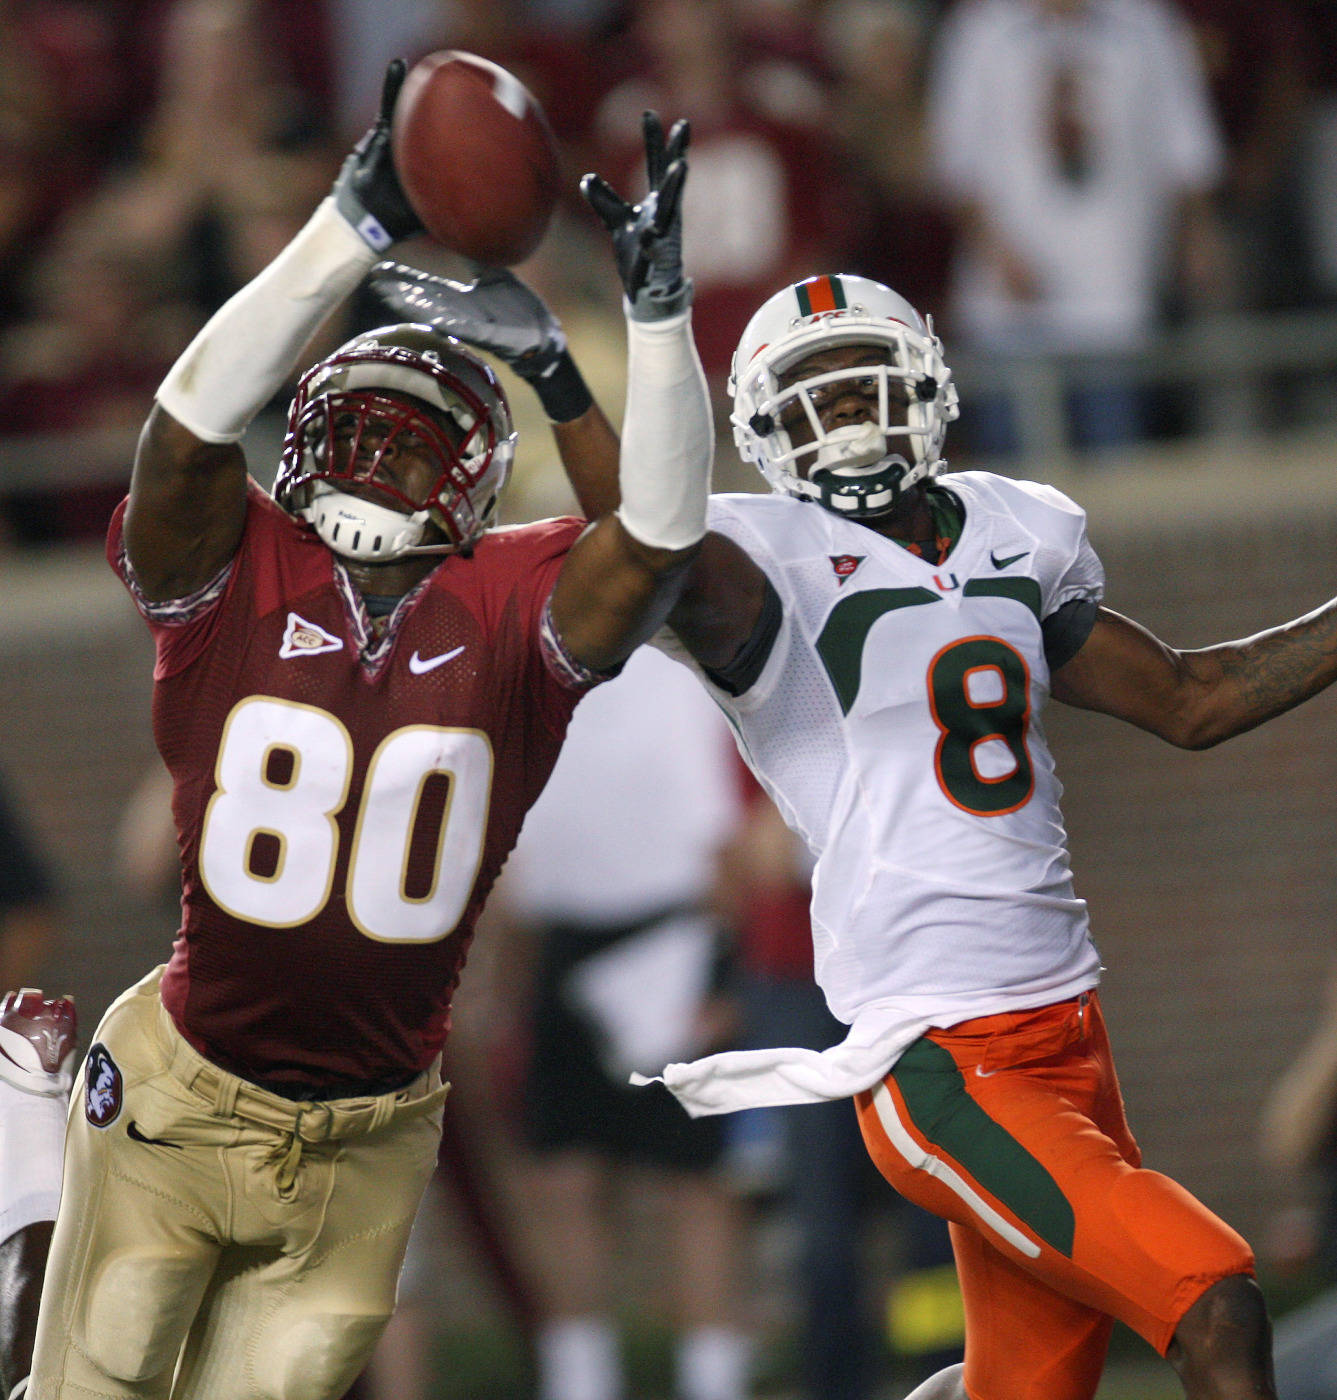 Florida State's Jarmon Fortson tries to make a catch as Miami's DeMarcus Van Dyke, right, defends during the first quarter of an NCAA college football game Monday, Sept. 7, 2009, in Tallahassee, Fla. (AP Photo/Phil Coale)